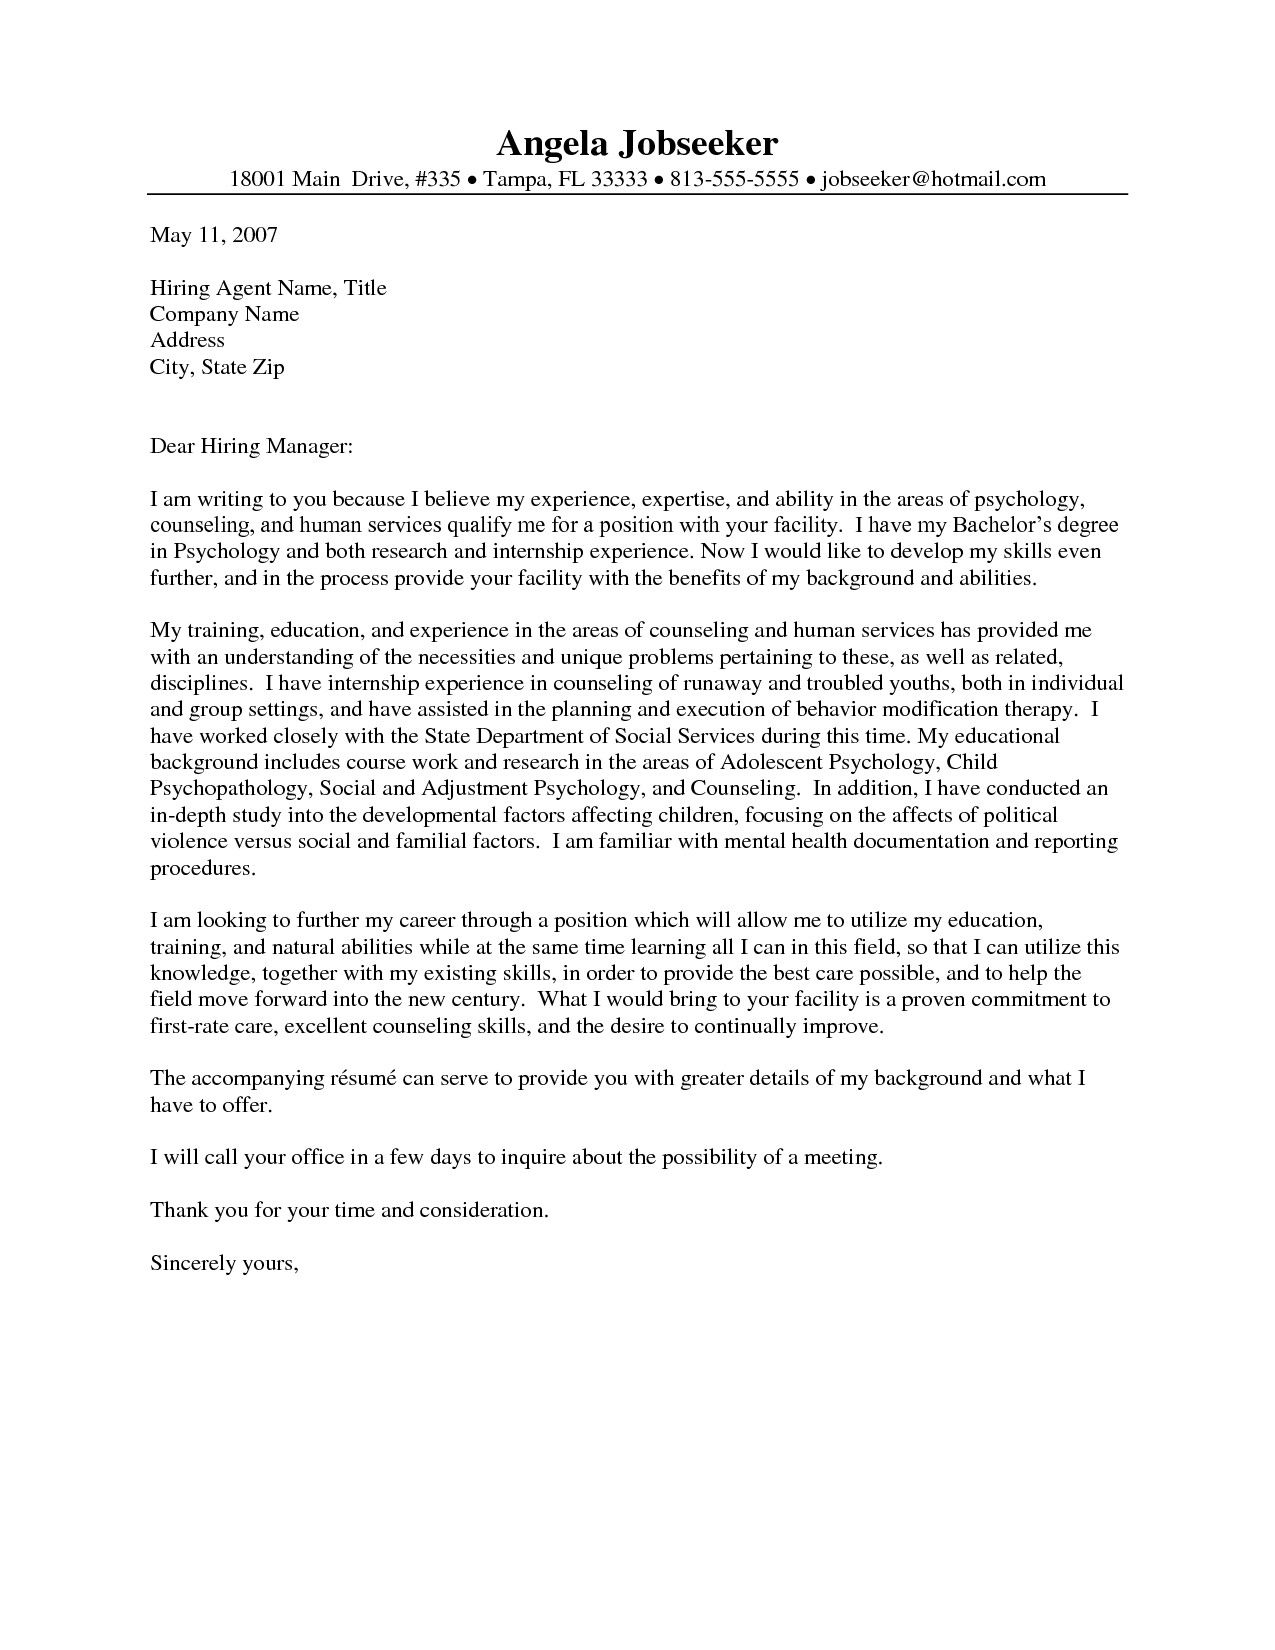 New Sample Training Request Letter Cover letter for